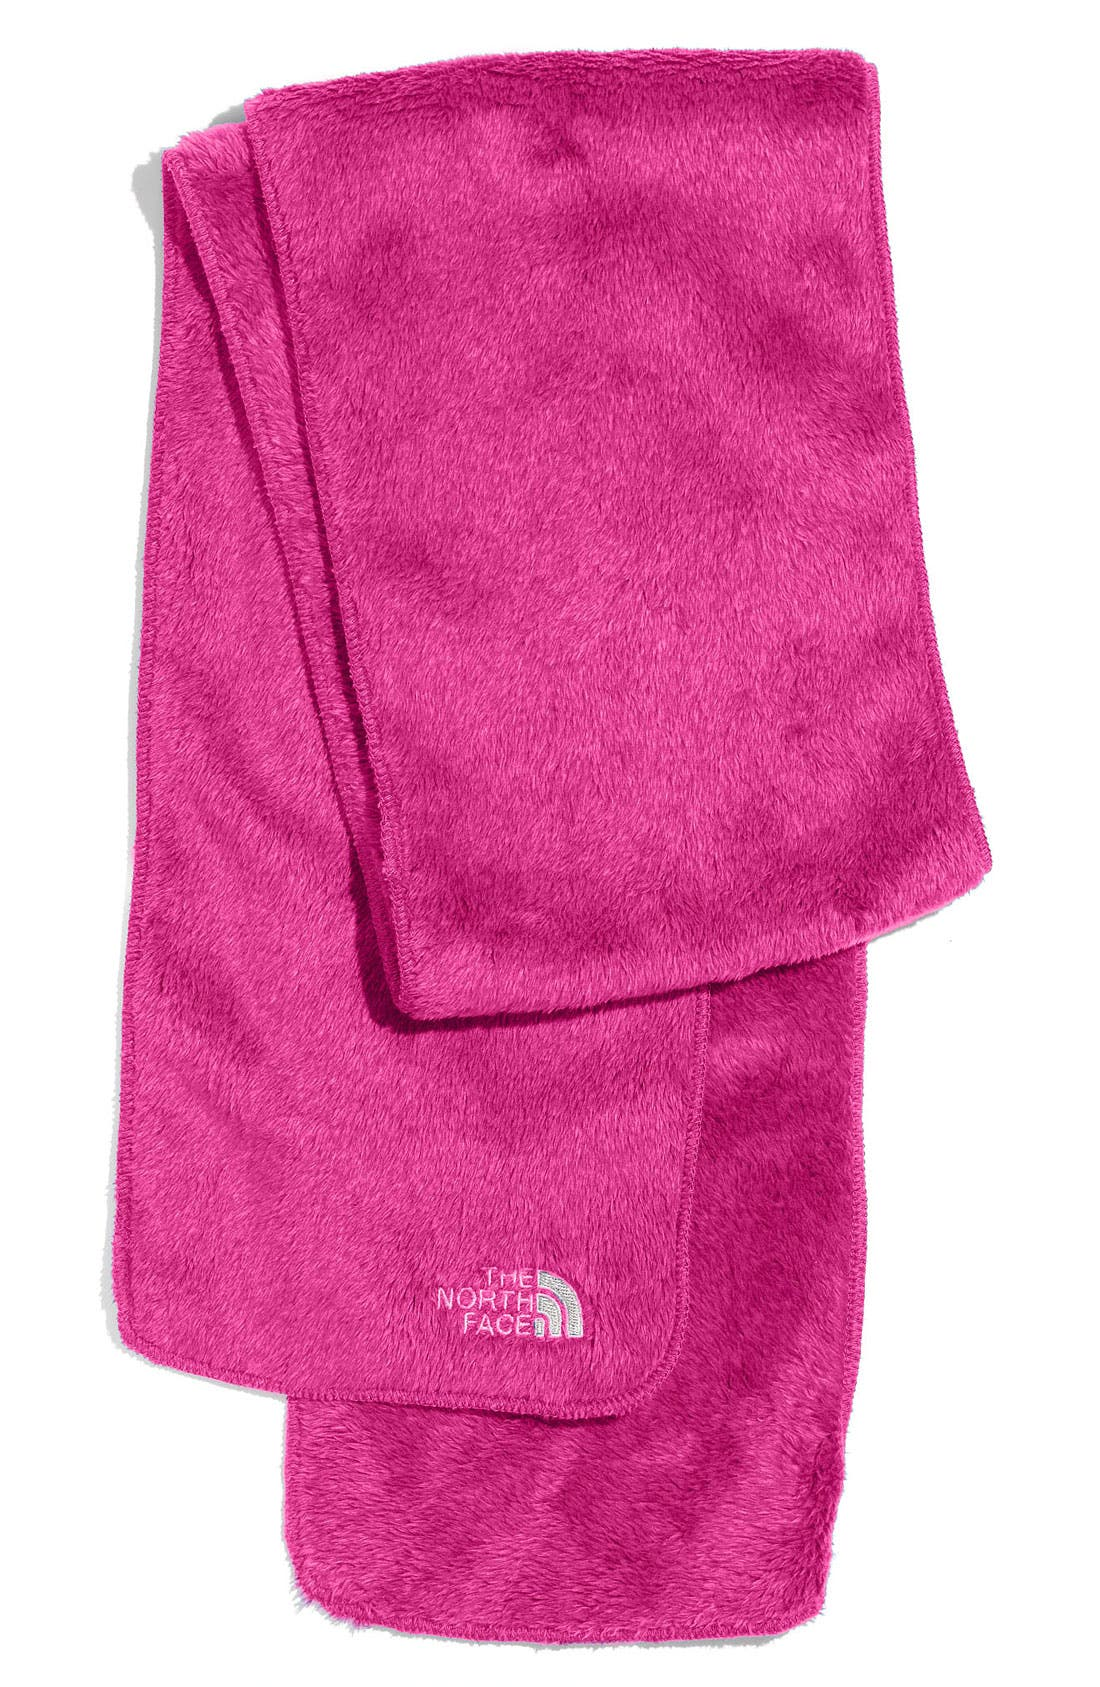 Alternate Image 1 Selected - The North Face 'Denali' Thermal Scarf (Girls)